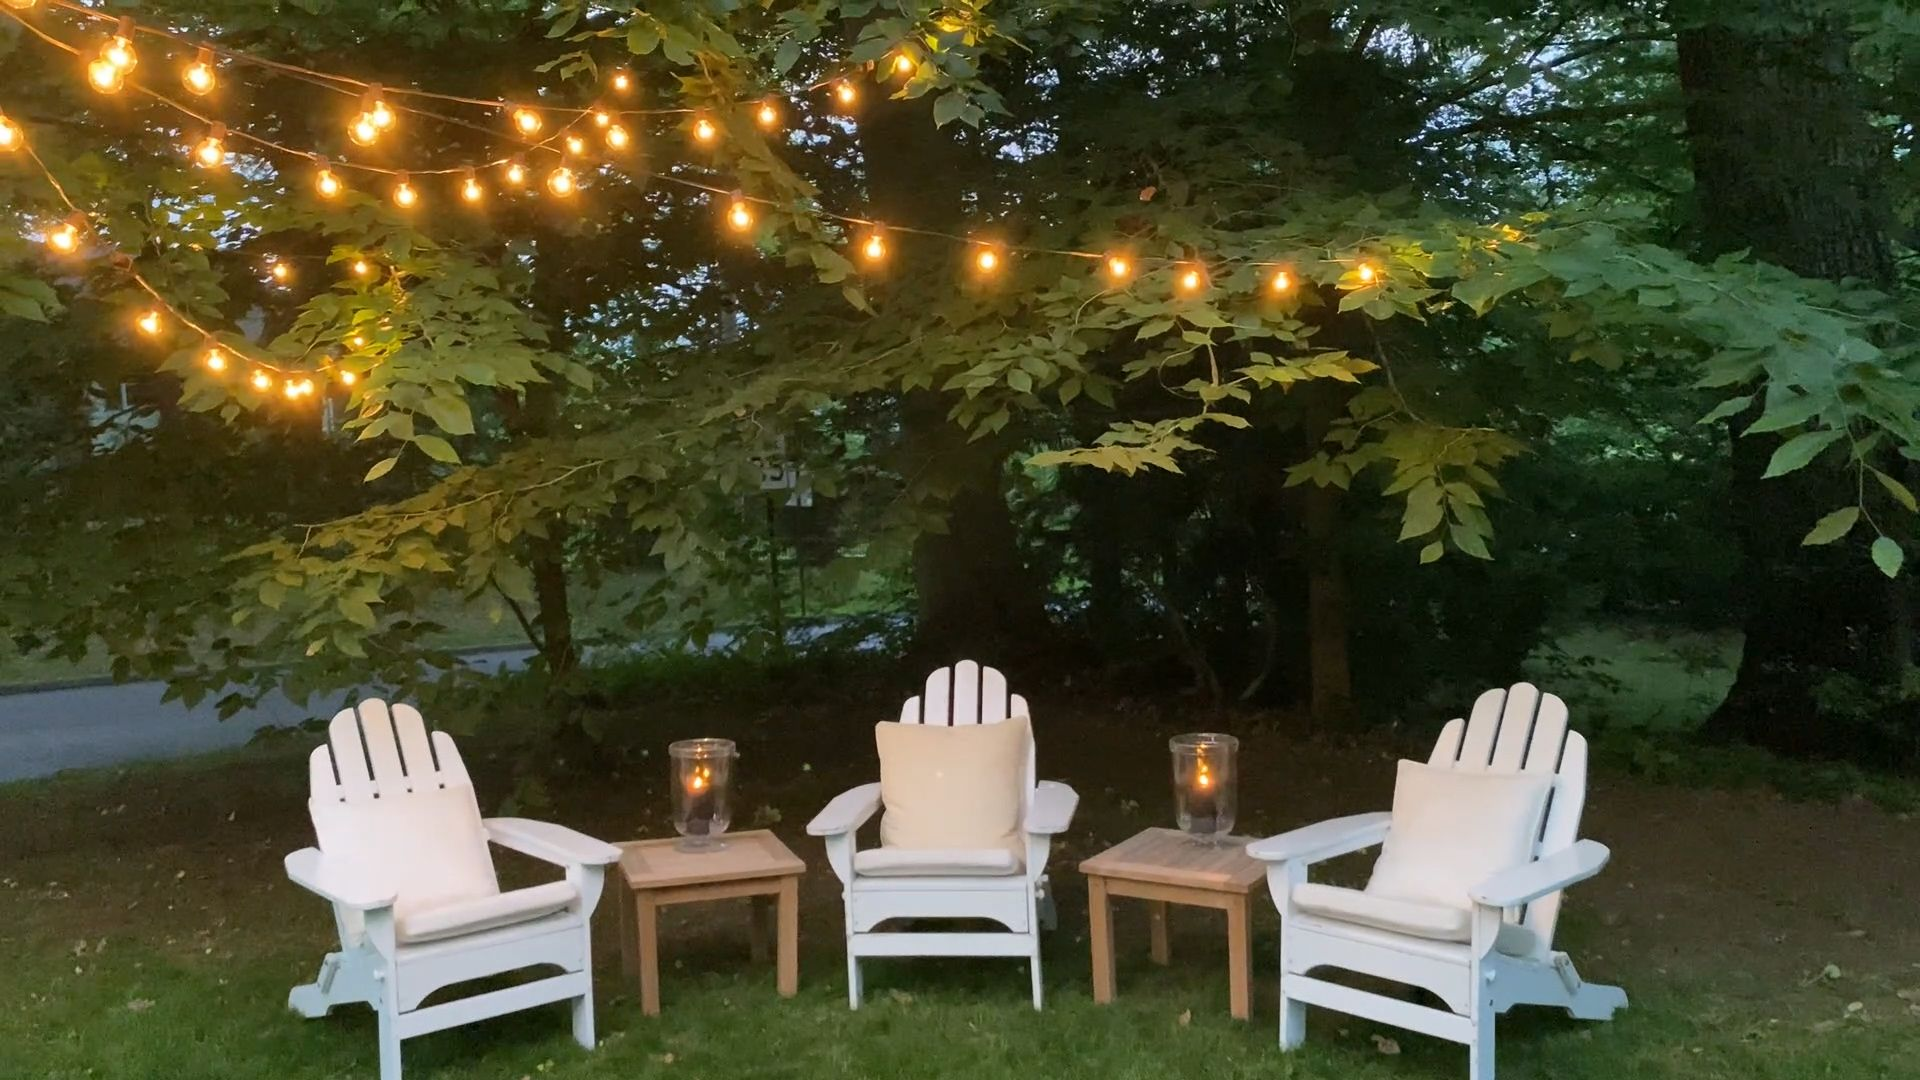 How To Hang String Lights Tips For A Backyard String Lights